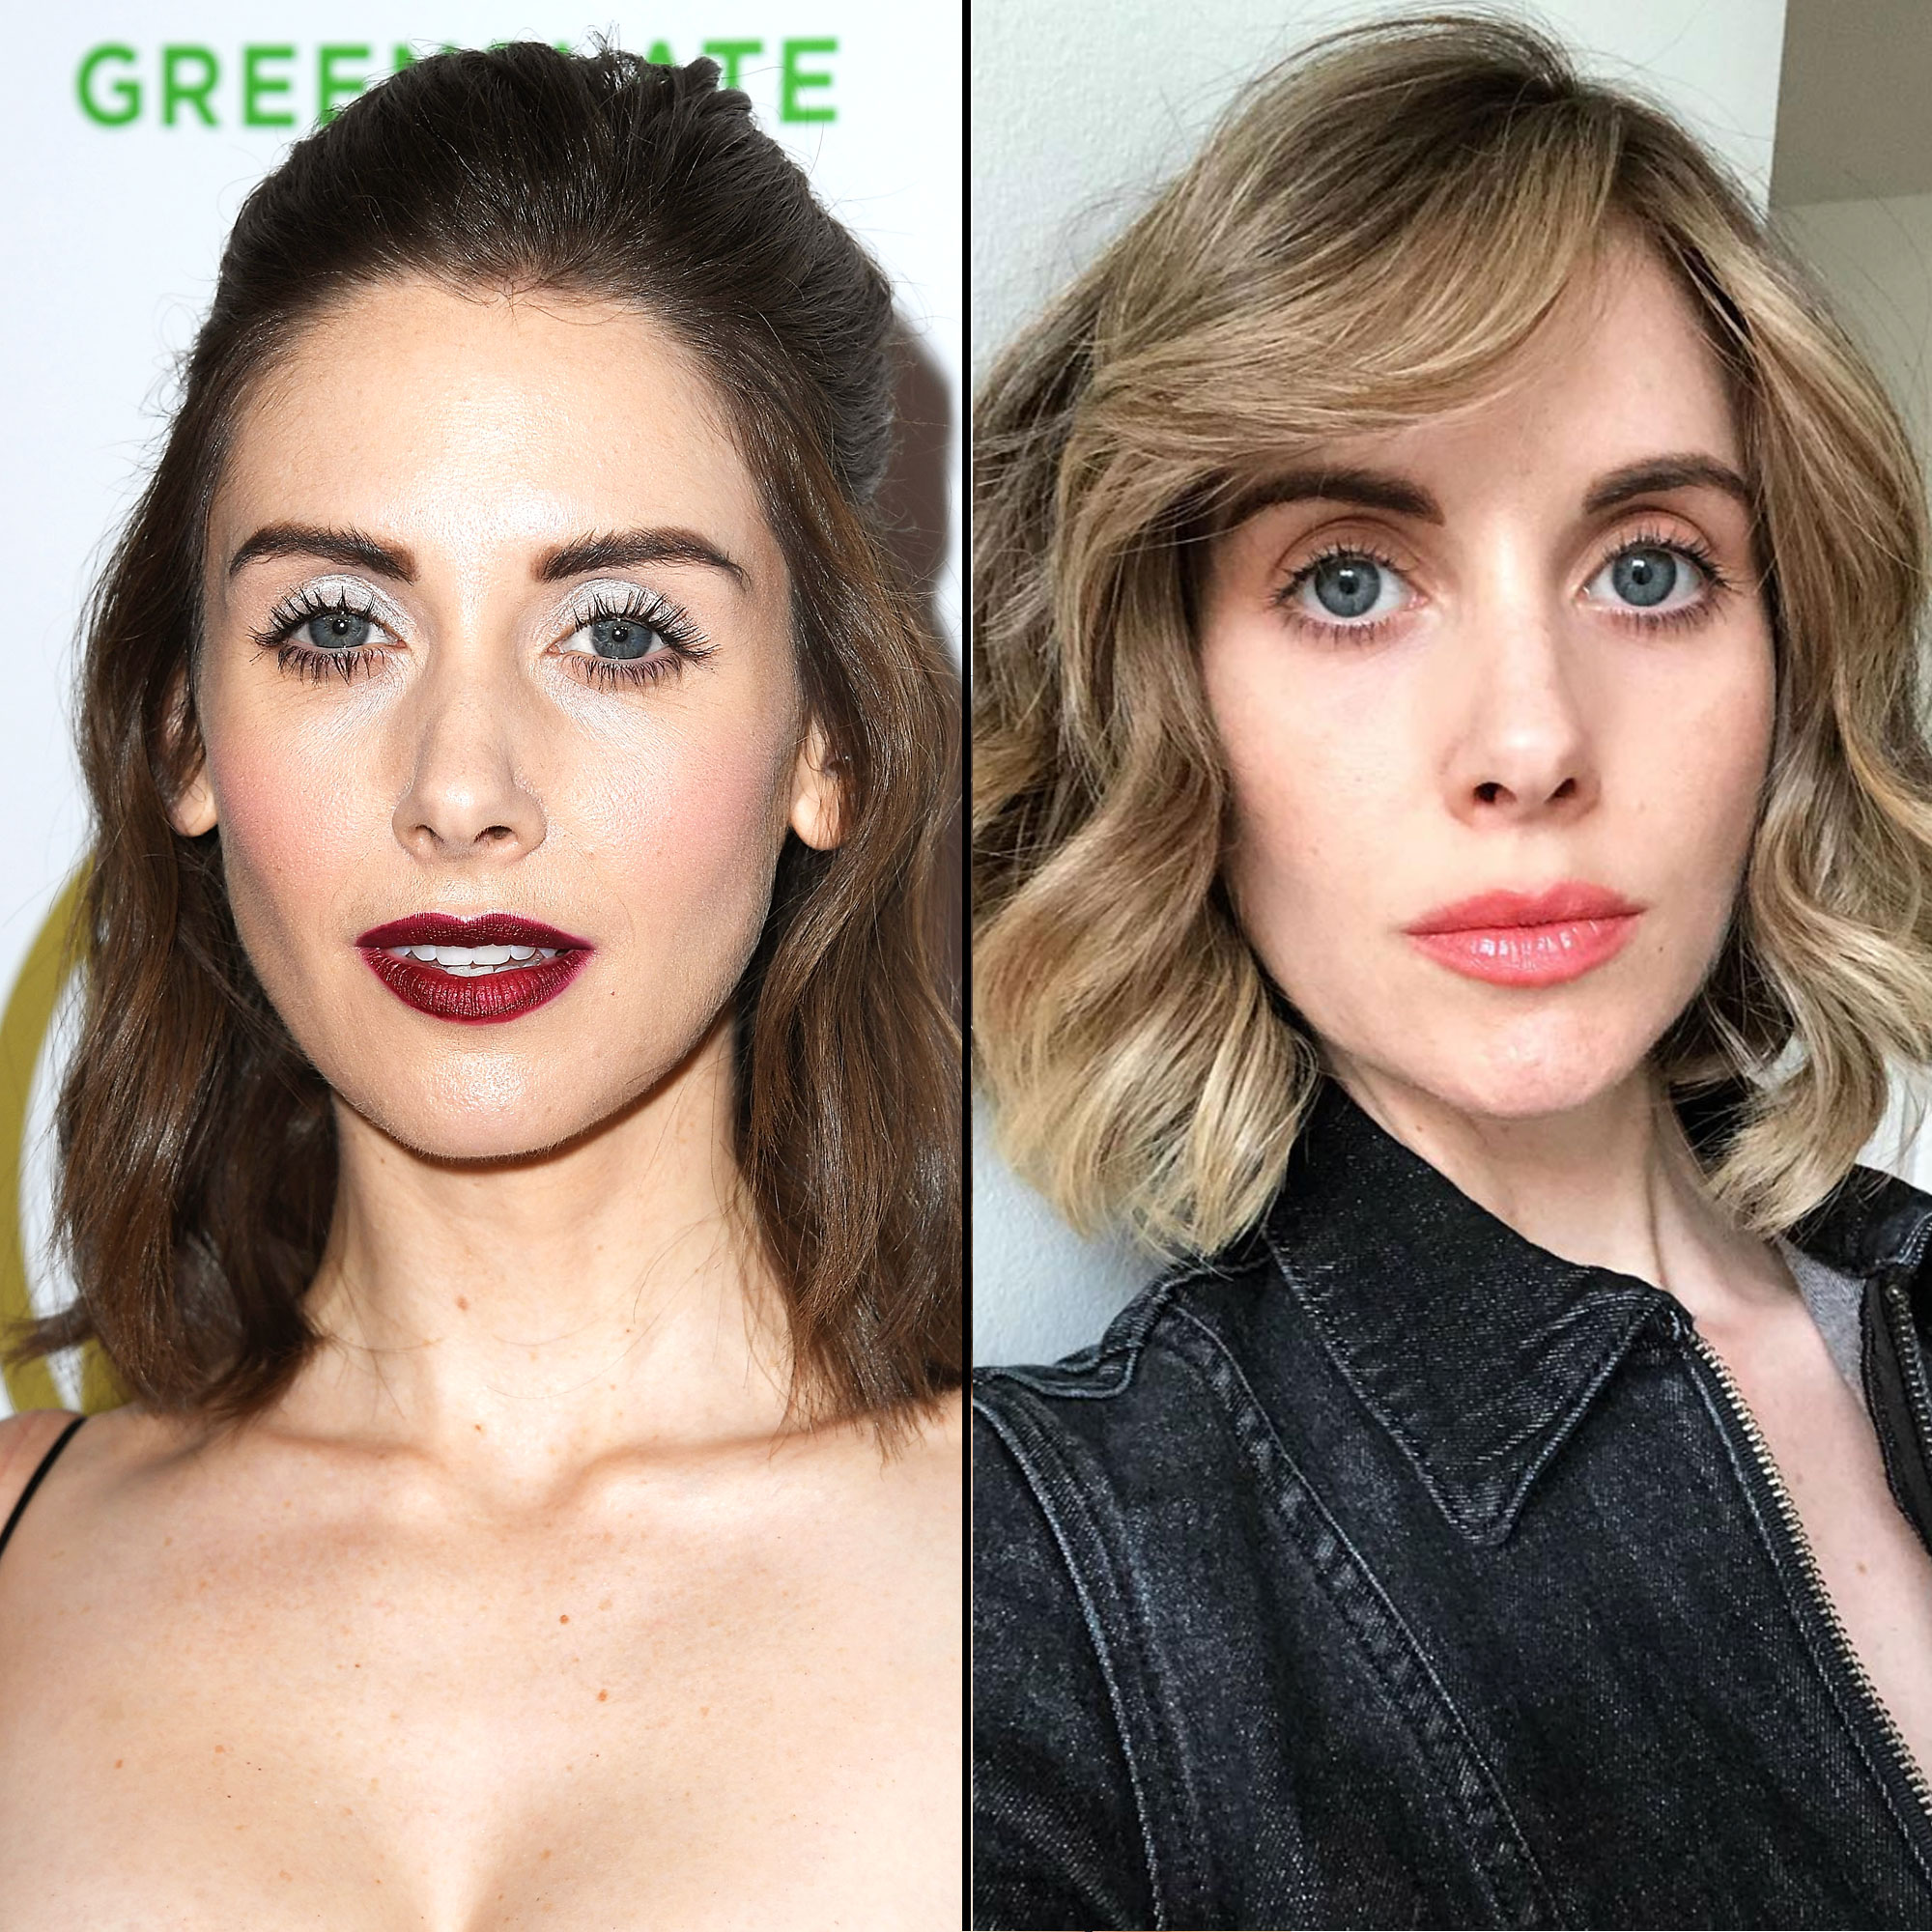 """Alison Brie hairstyle hair transformation - The Glow actress debuted a new bronde (you know, part blonde, part brunette) 'do on Instagram on April 17. """"When your husband asks you to 'go blonde' for a role...you say yes. 😉,"""" she captioned the pic showing off her lighter strands by colorist Clariss Rubenstein."""